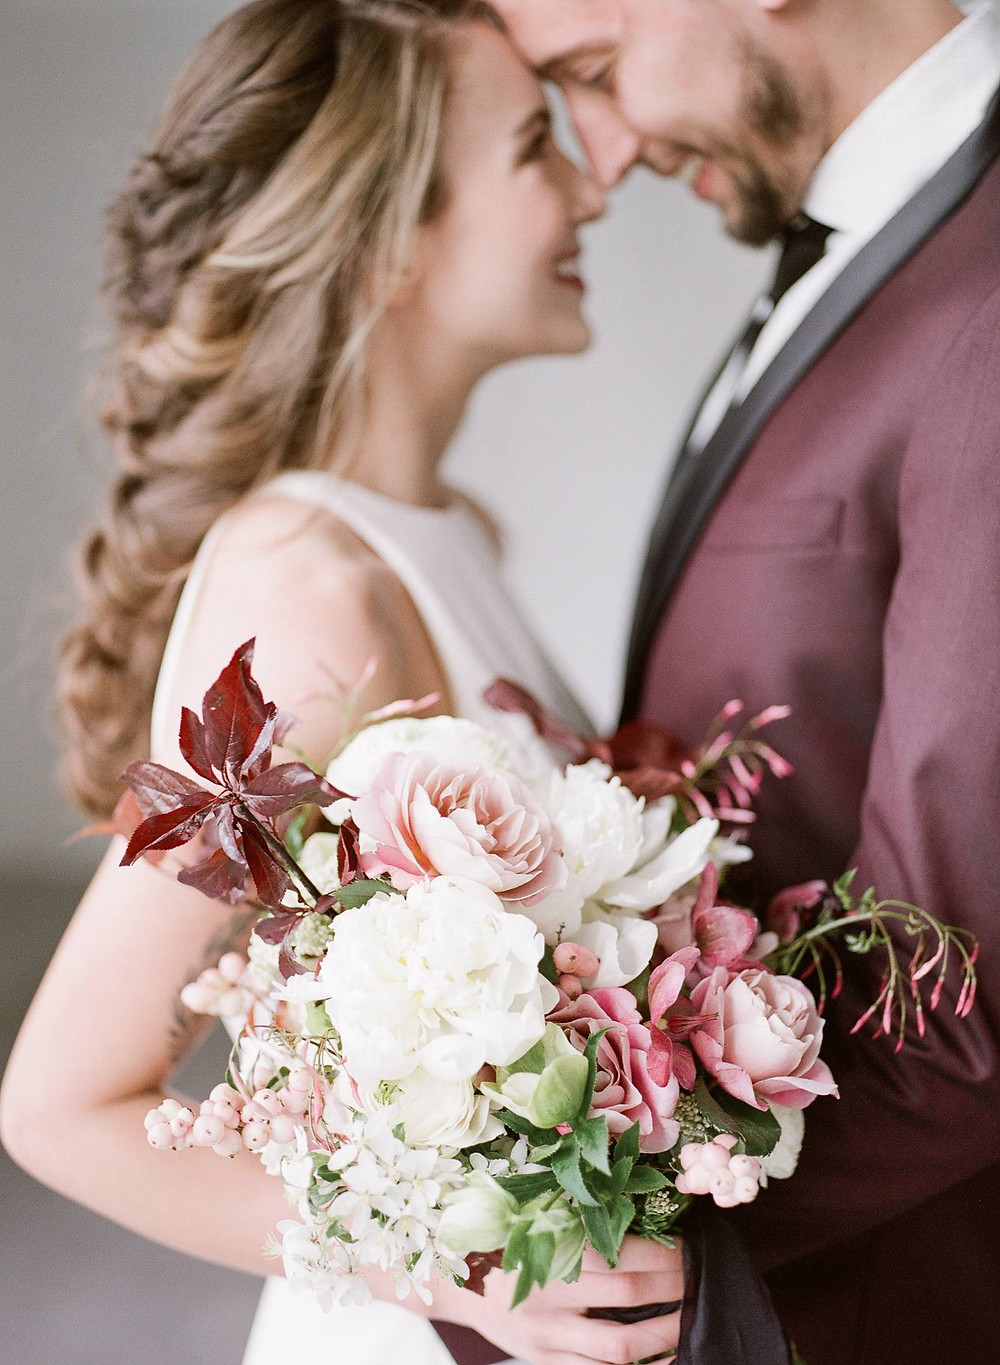 Modern bride and groom with Studio Bloom Iowa bridal bouquet of peonies, roses, ranunculus, hellebores, and plum branches